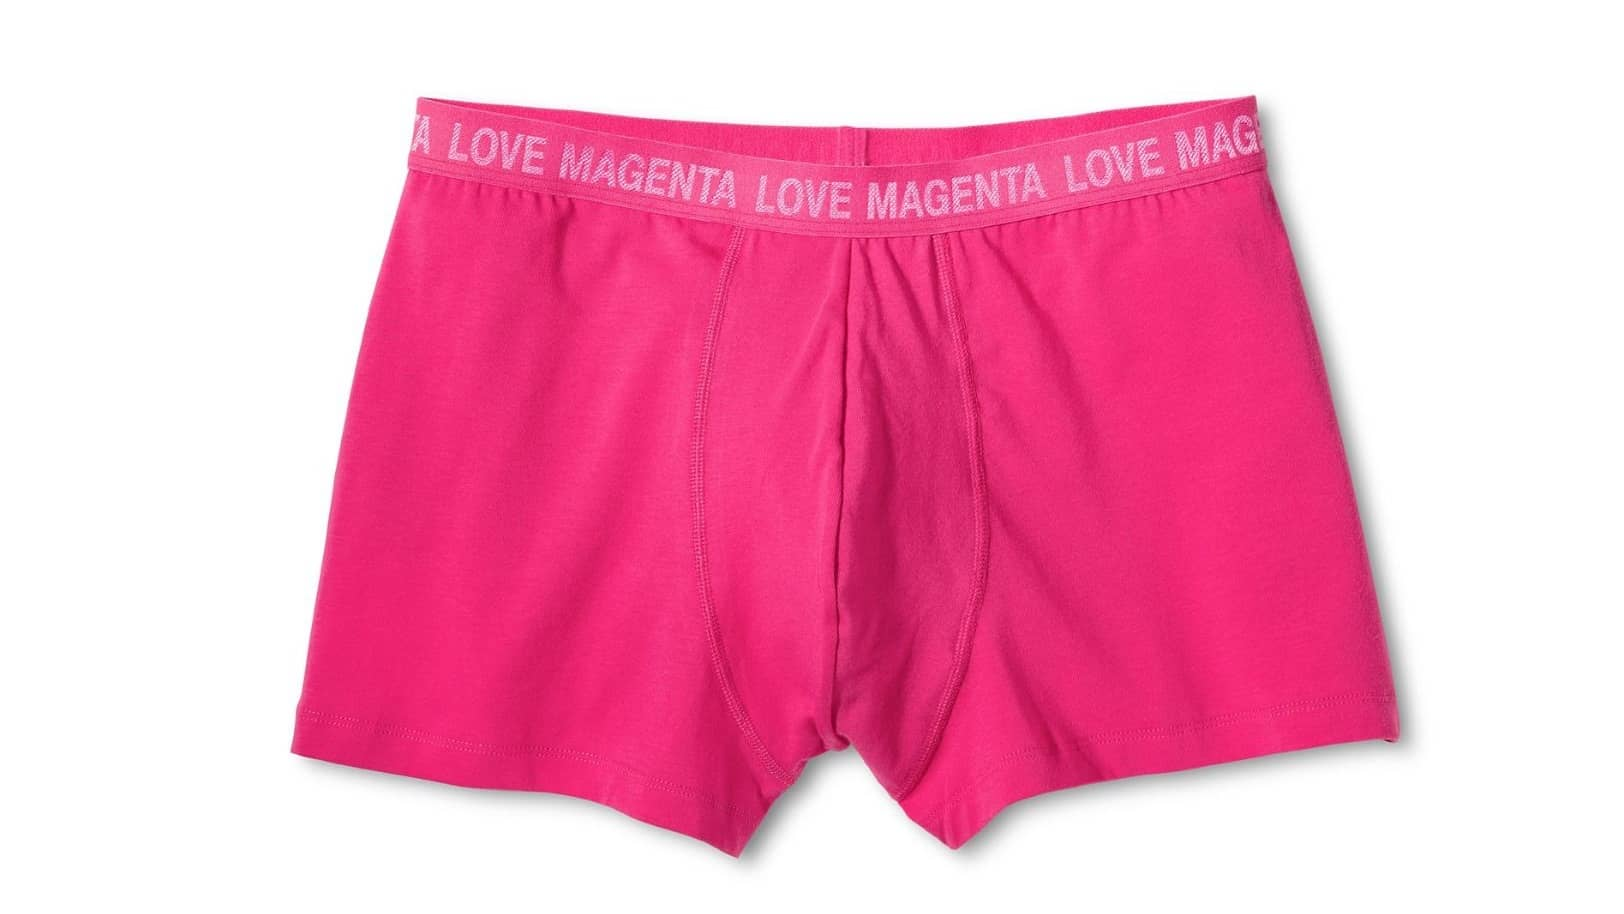 T Mobile Connected Underwear 3